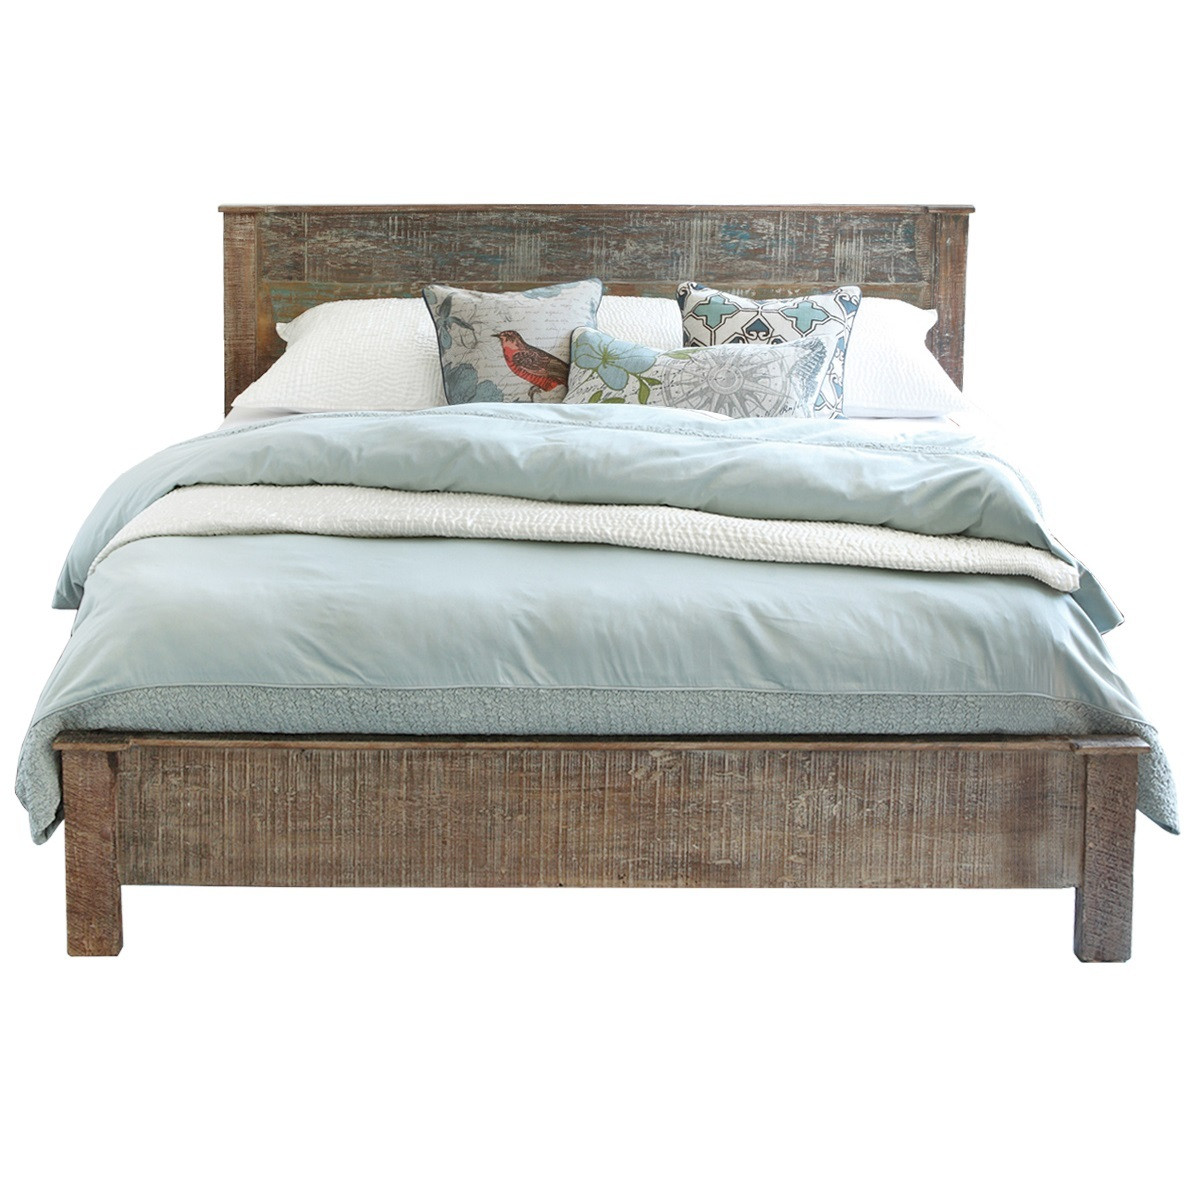 bedroom design california king wood bed frame - California King Bed Sheets